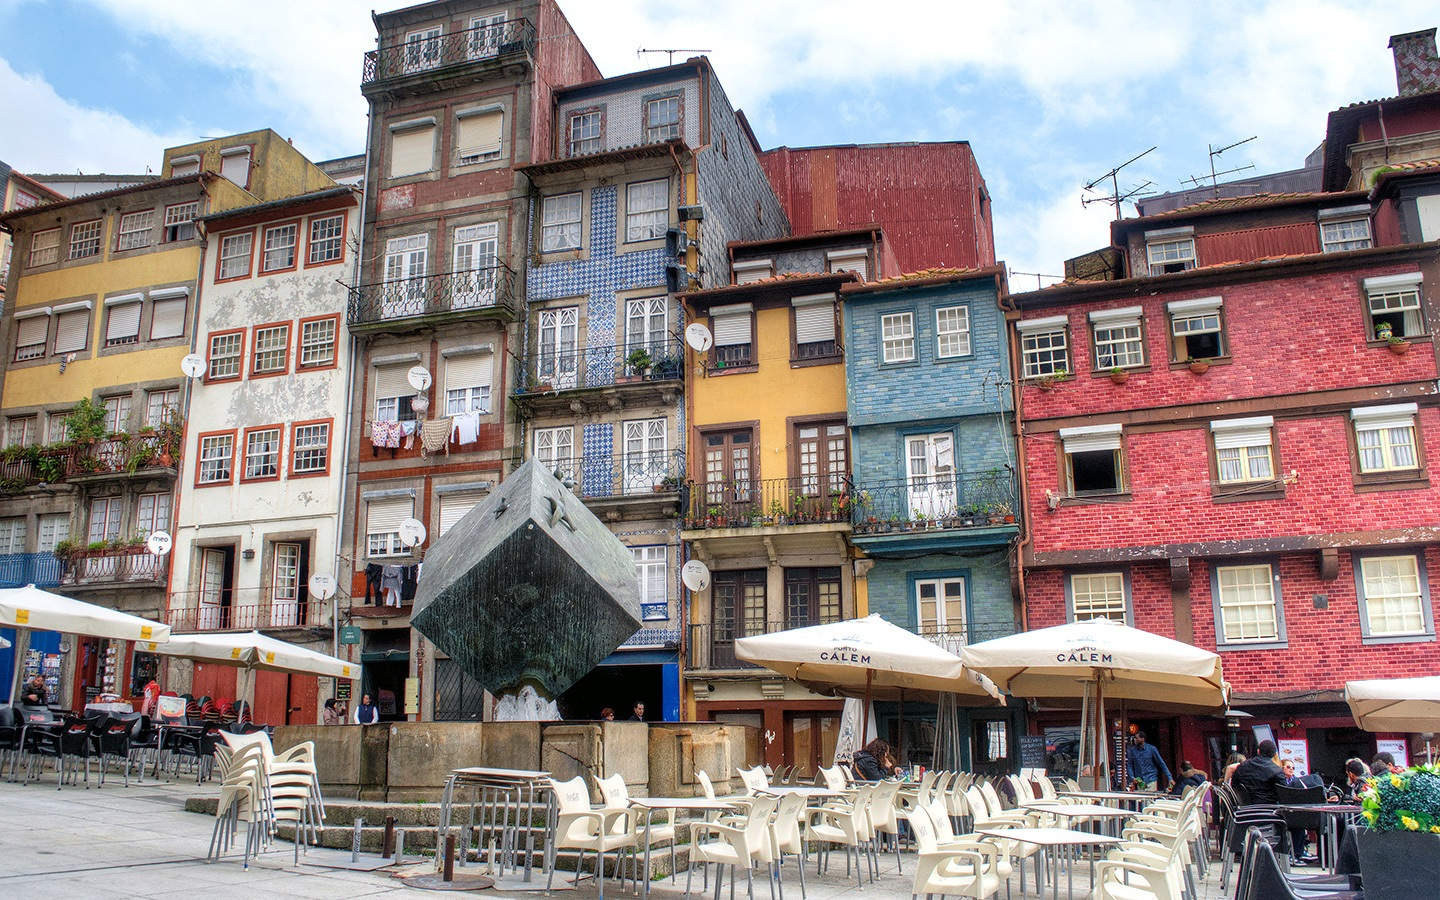 Colourful buildings in Porto's Praça da Ribeira